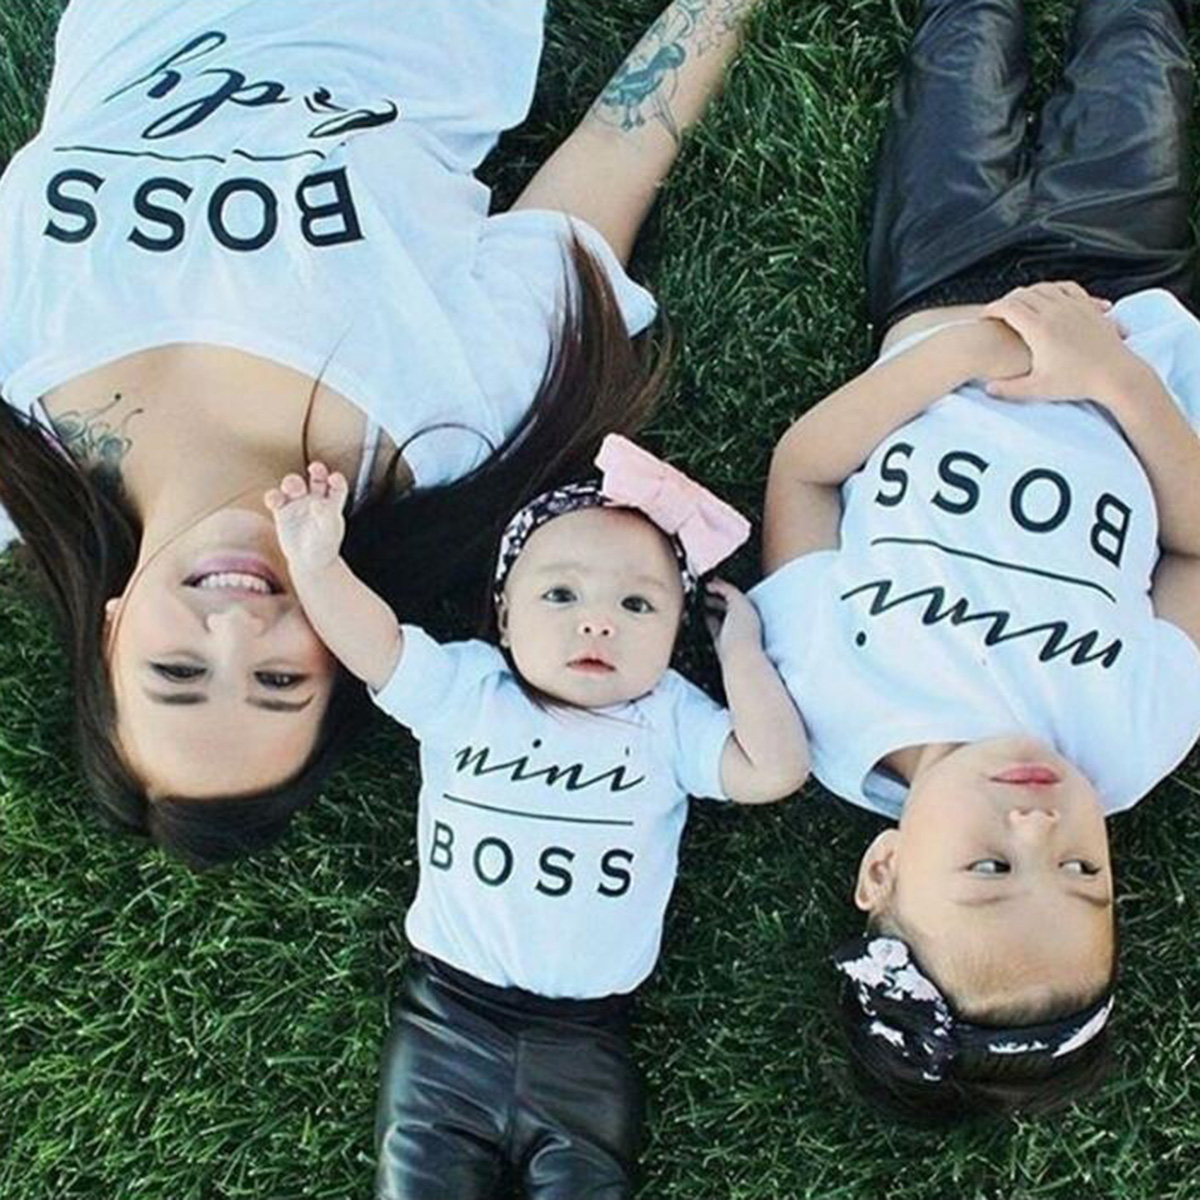 Family Look Mini Boss Print Couple T Shirts Summer Family Matching Clothes Father font b Mother